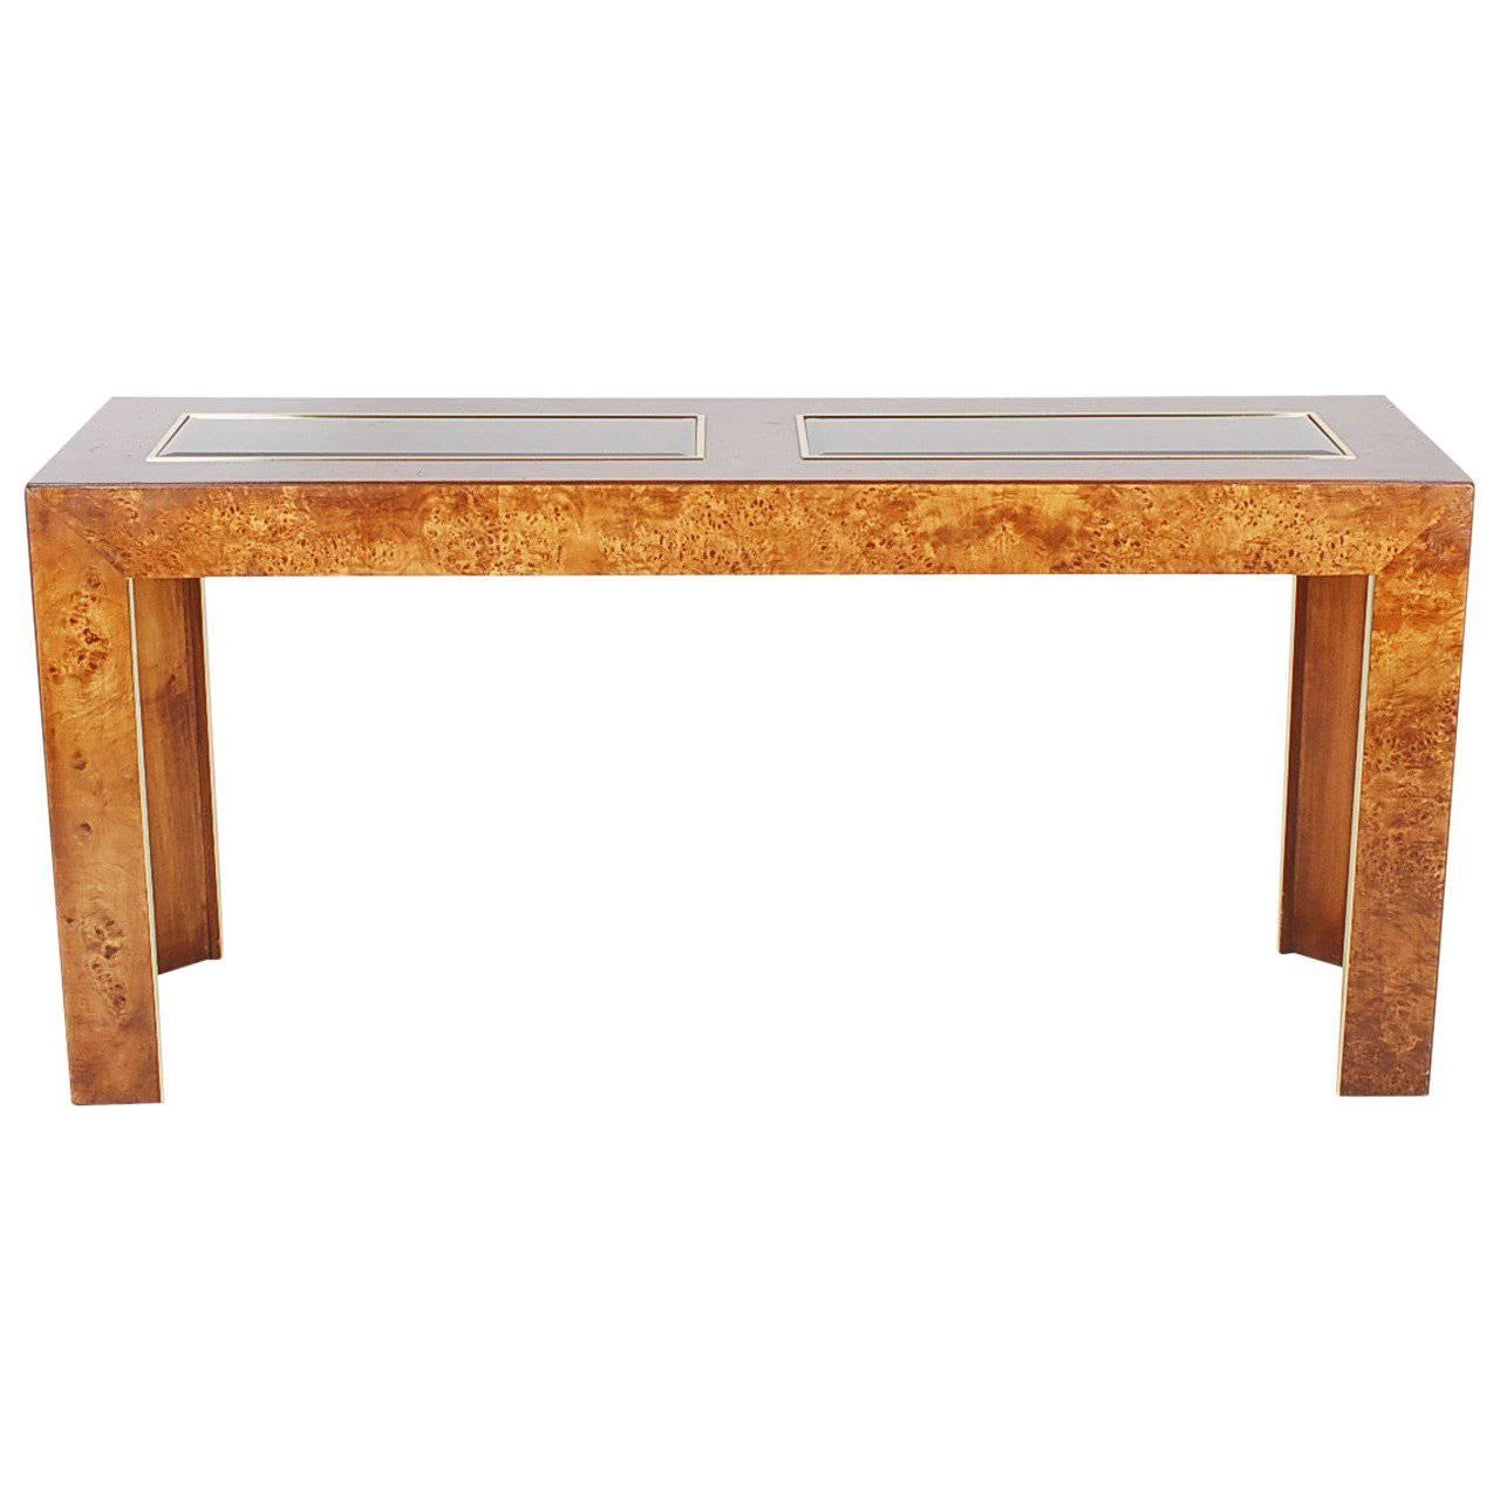 Burl olive ash console or sofa table by thomasville for sale at mid century modern burl and brass desk sofa or console table after milo baughman geotapseo Gallery